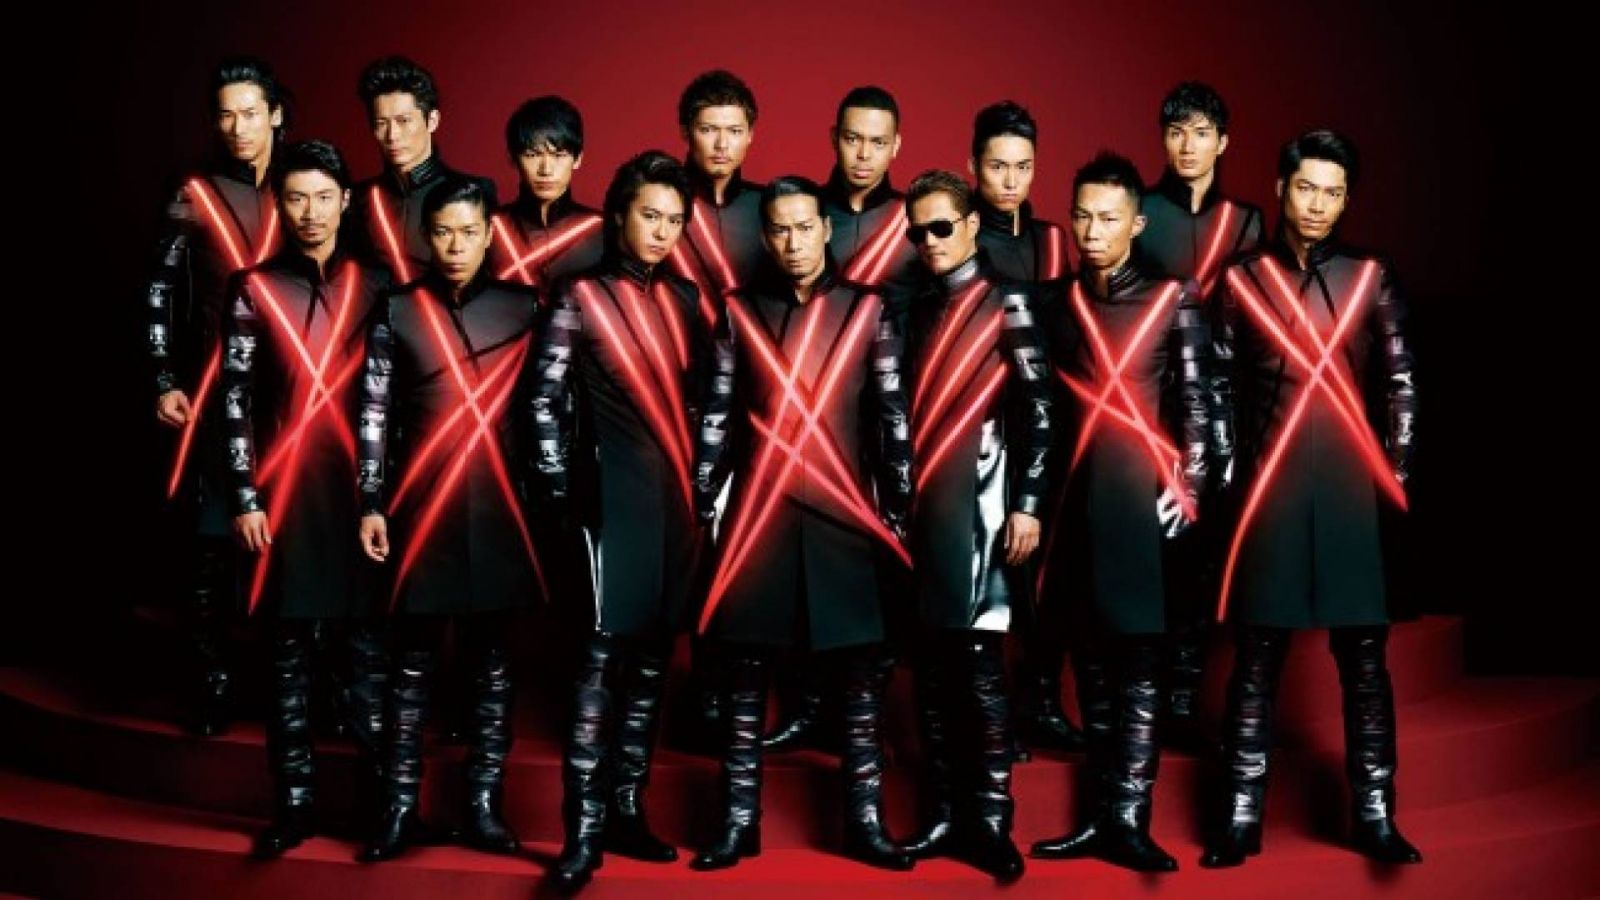 EXILE © Avex Entertainment Inc. / e-talentbank